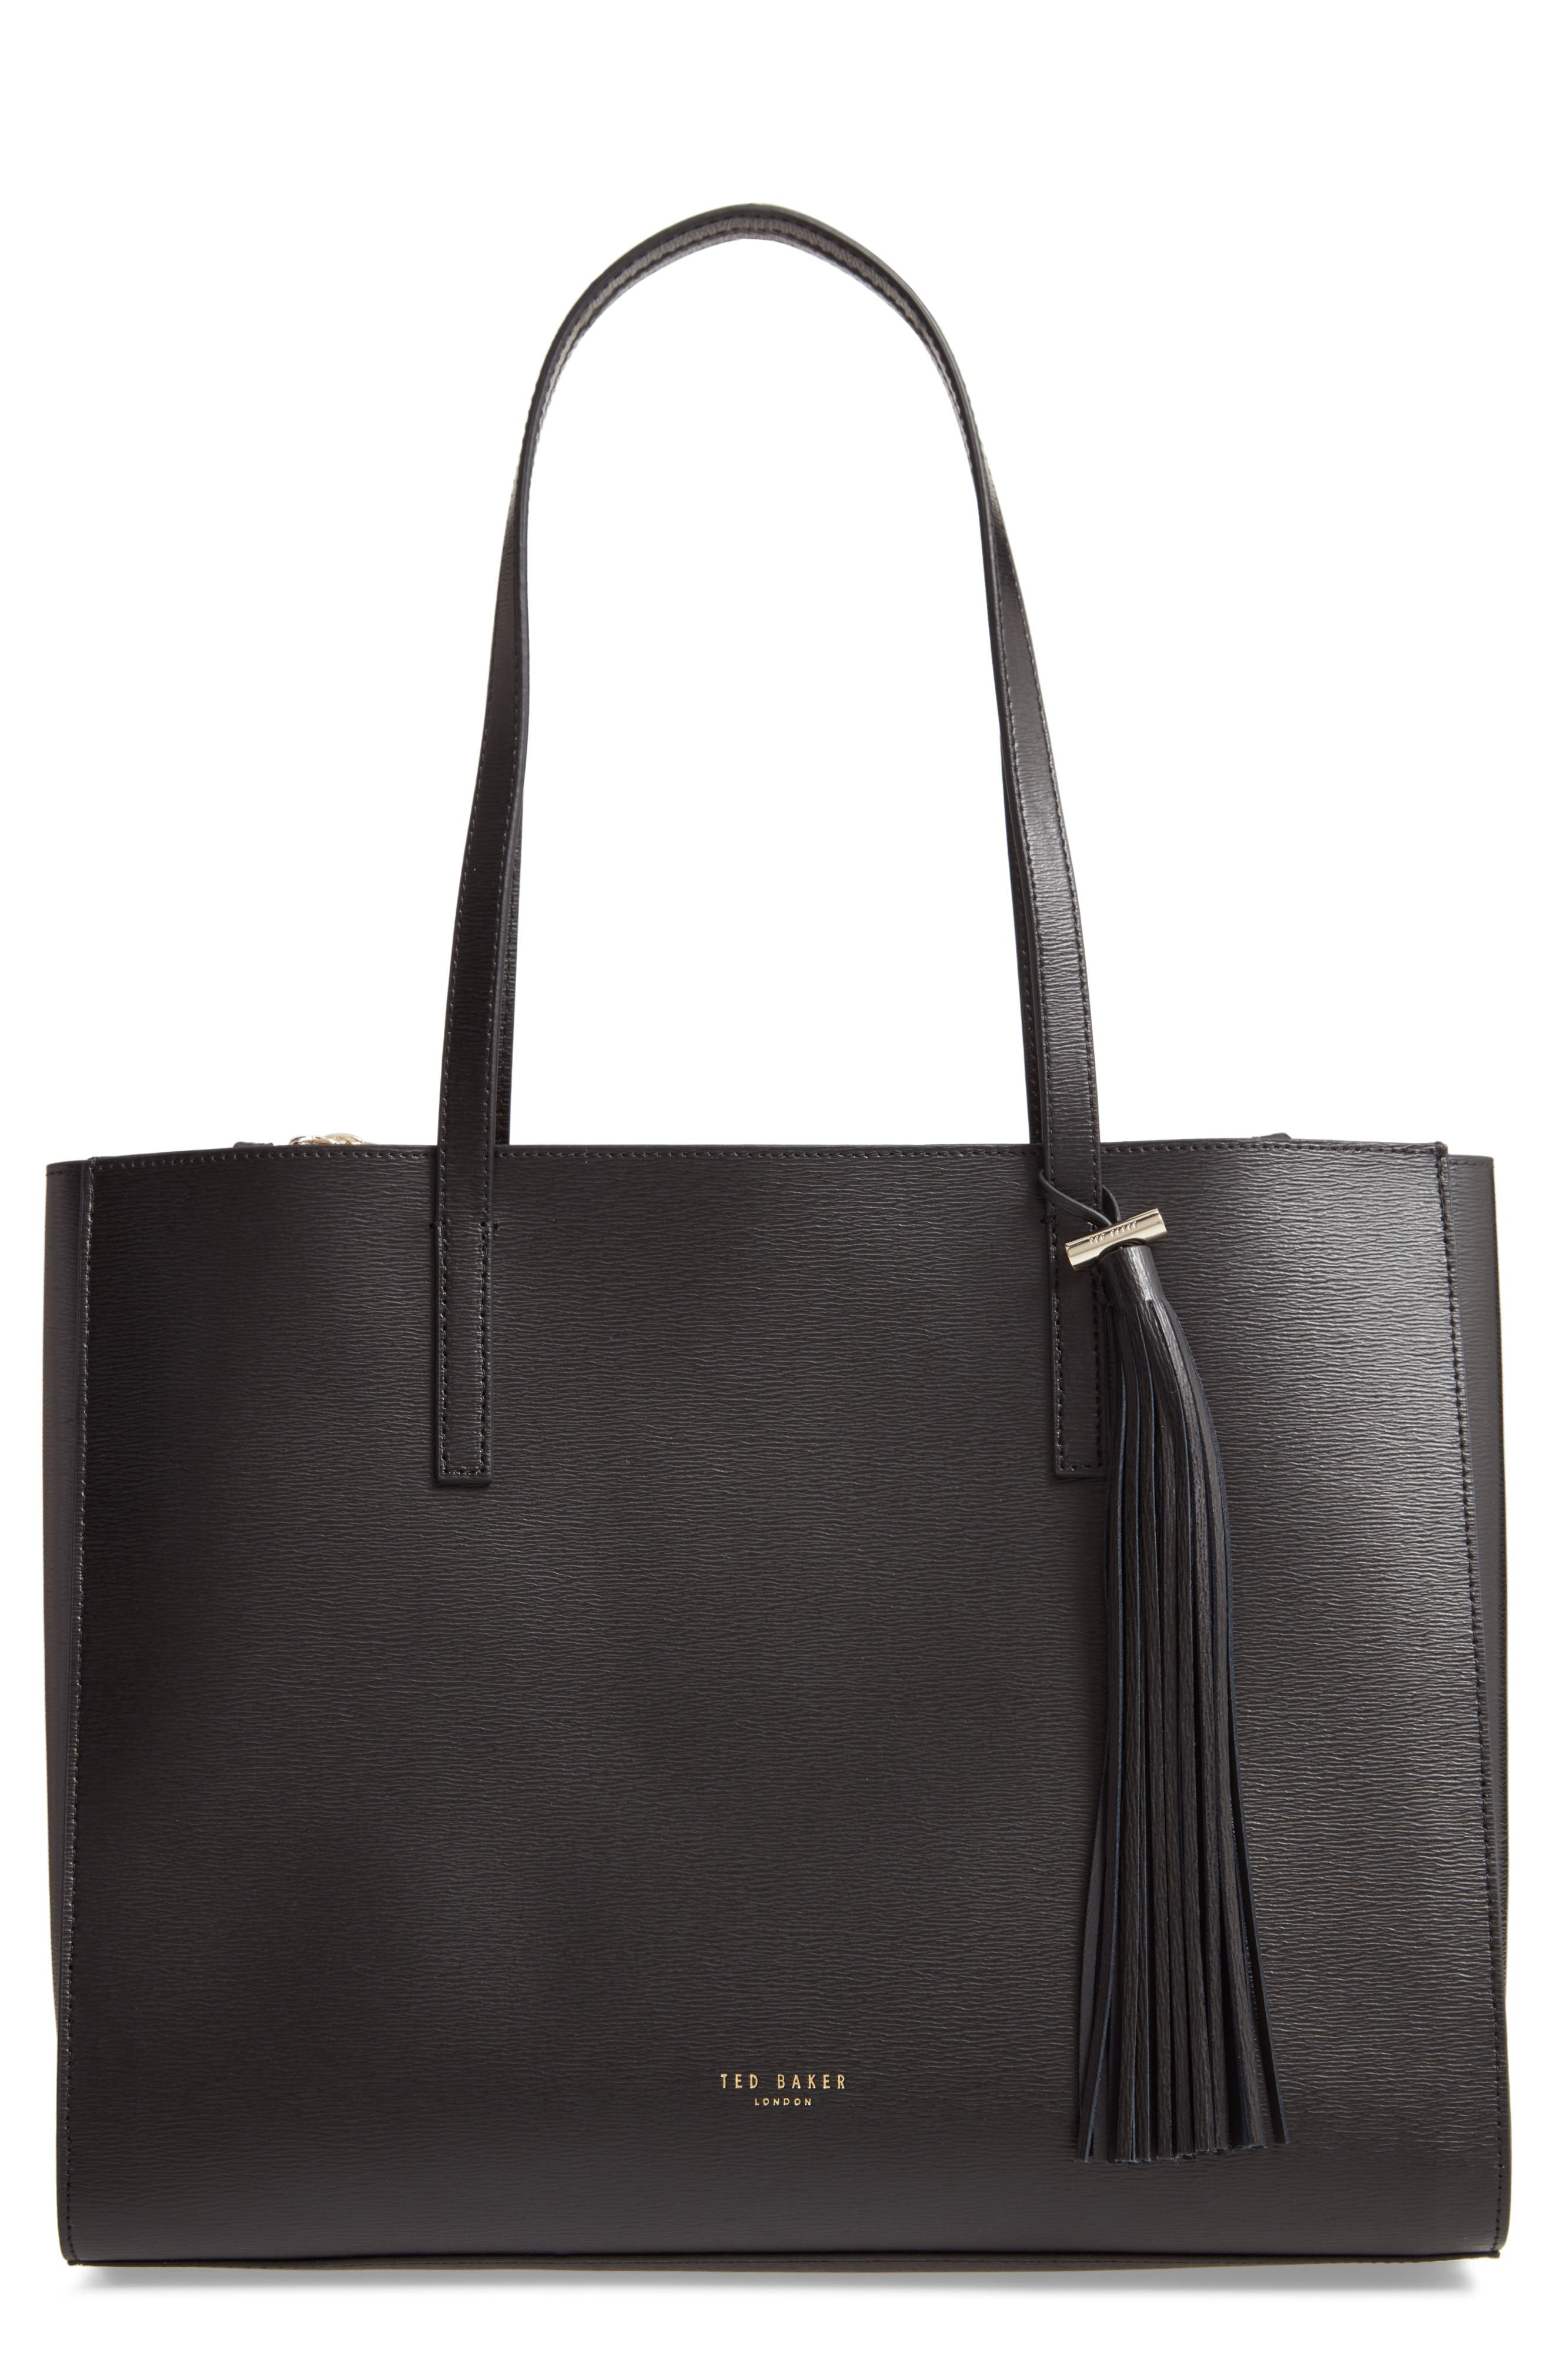 Ted Baker London Totes Large Narissa Leather Tote